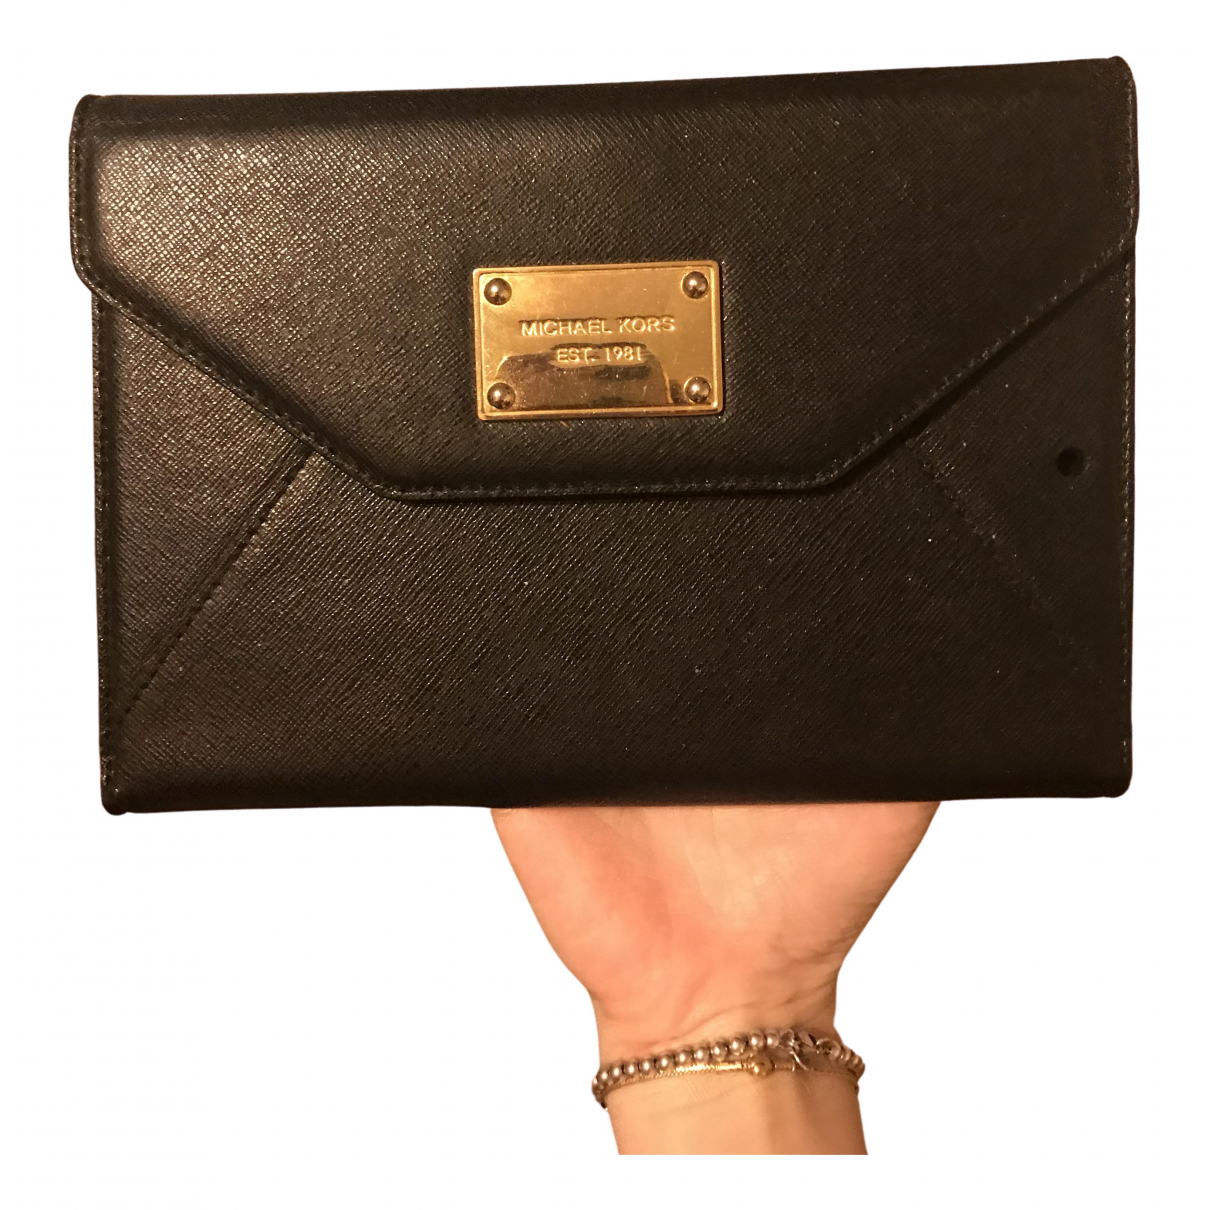 Michael Kors \N Black Leather Accessories for Life & Living \N